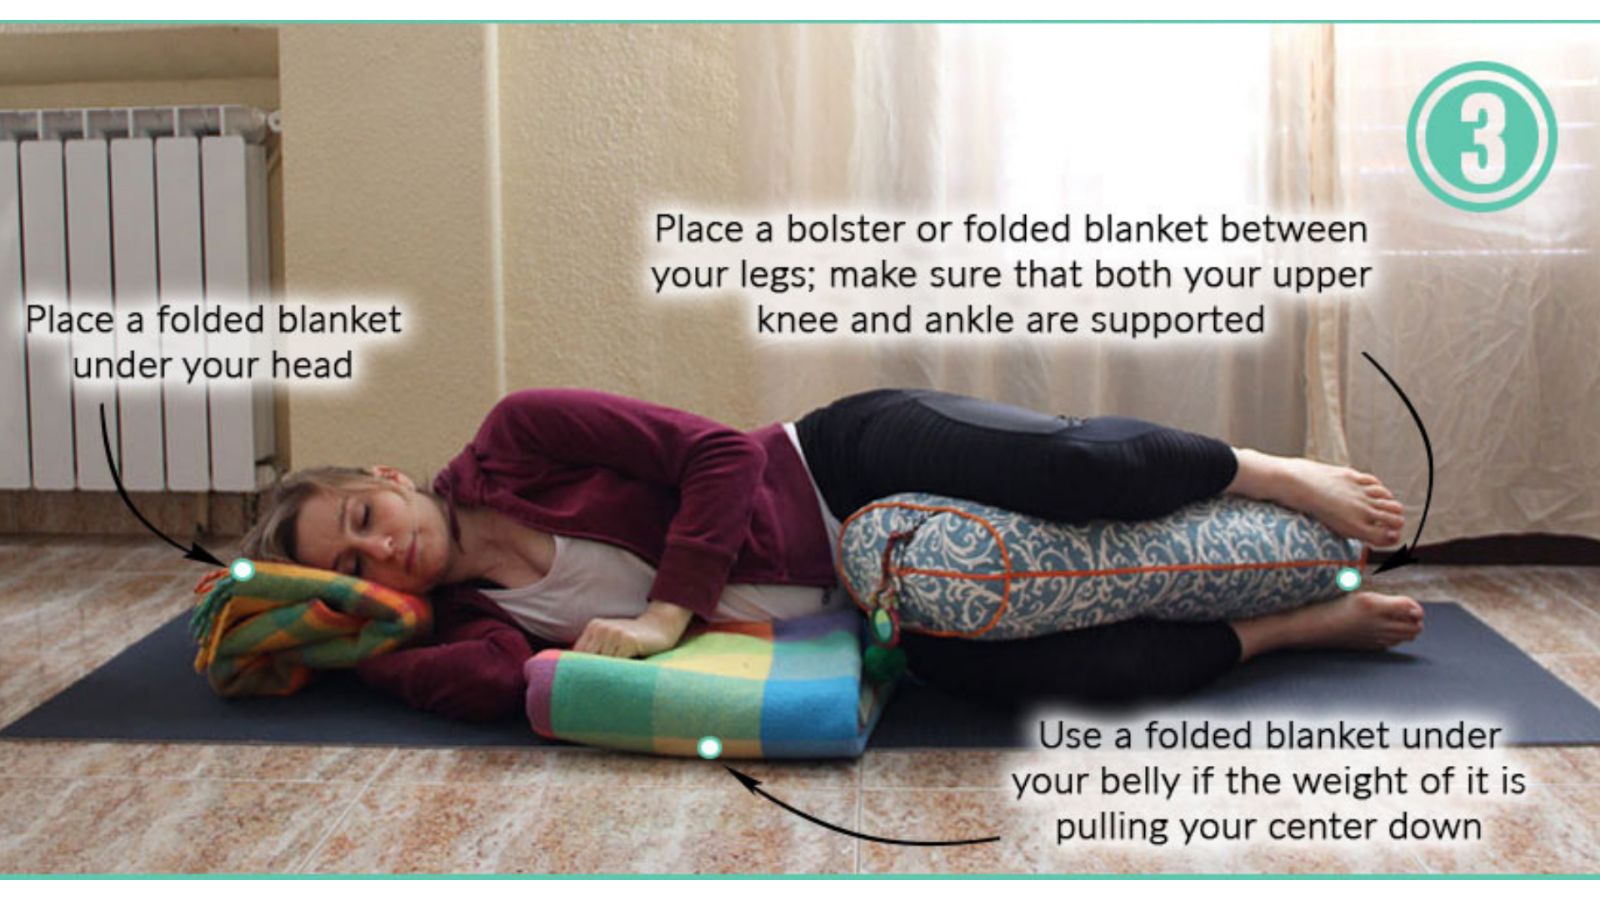 How to safely practice Side-Lying Savasana with bent knees and bolsters while pregnant